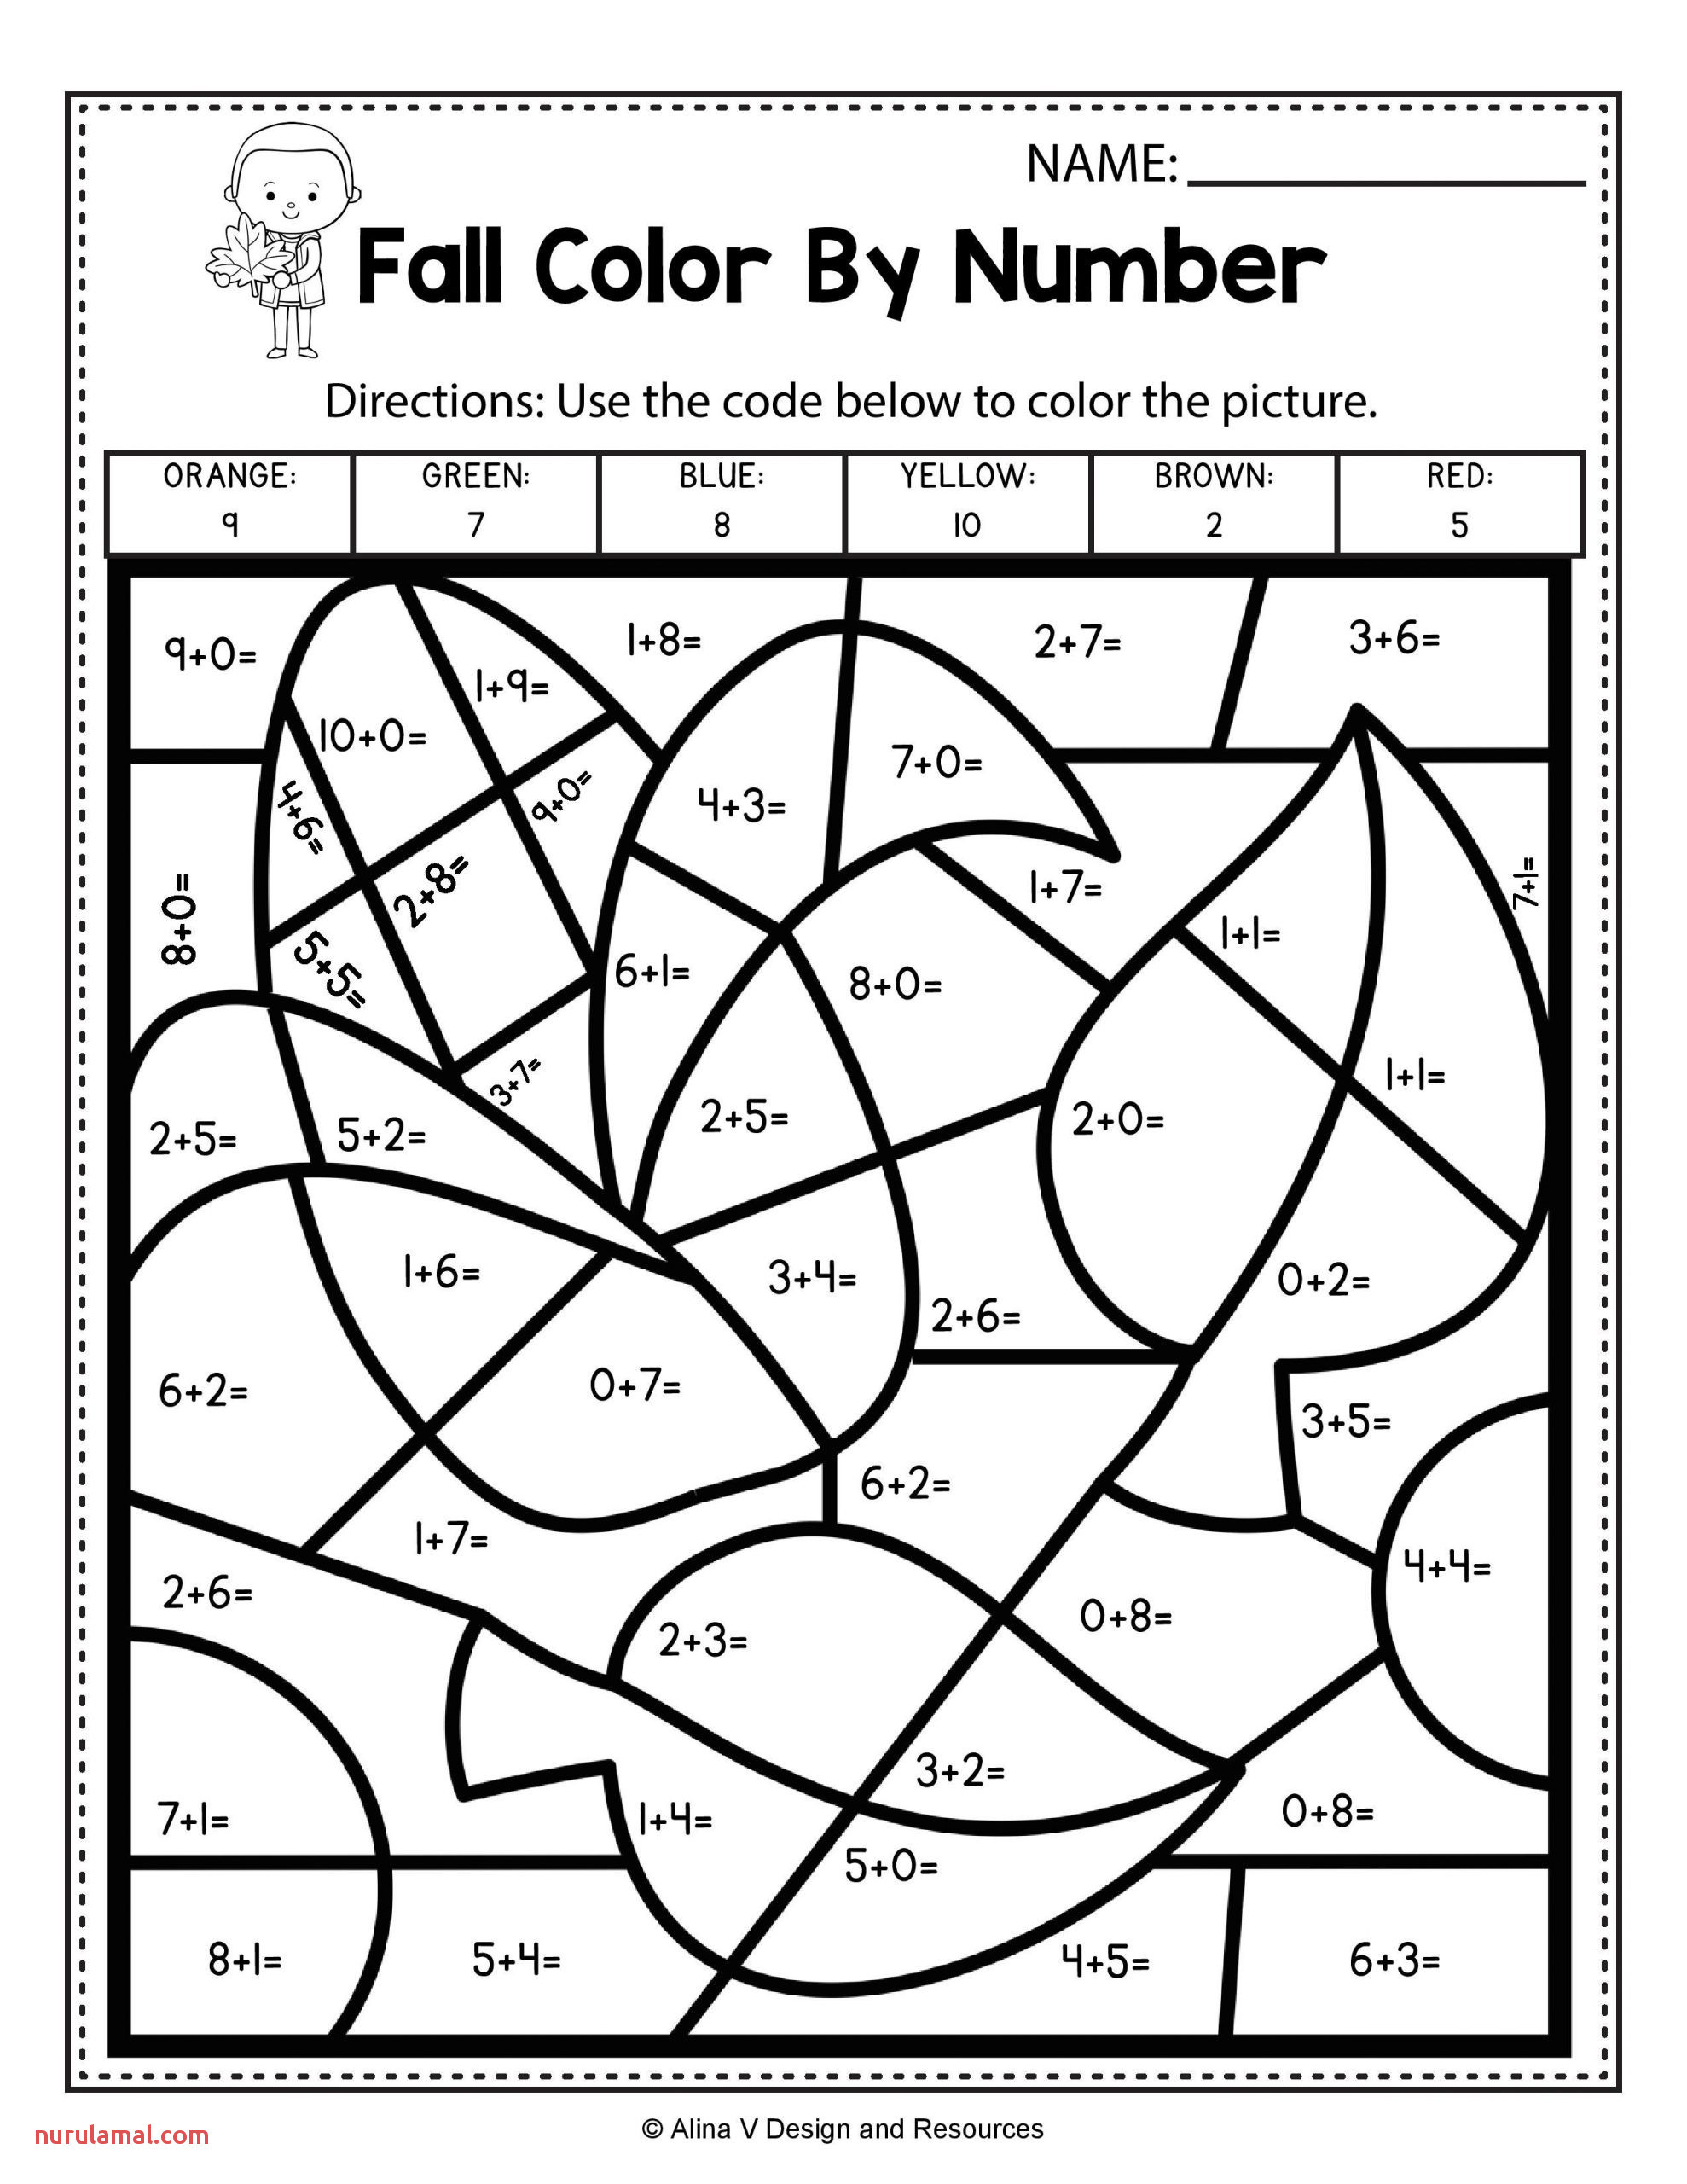 Free Printable Abeka Worksheets Abeka Worksheets for K4 Printable and Activities 4th Grade